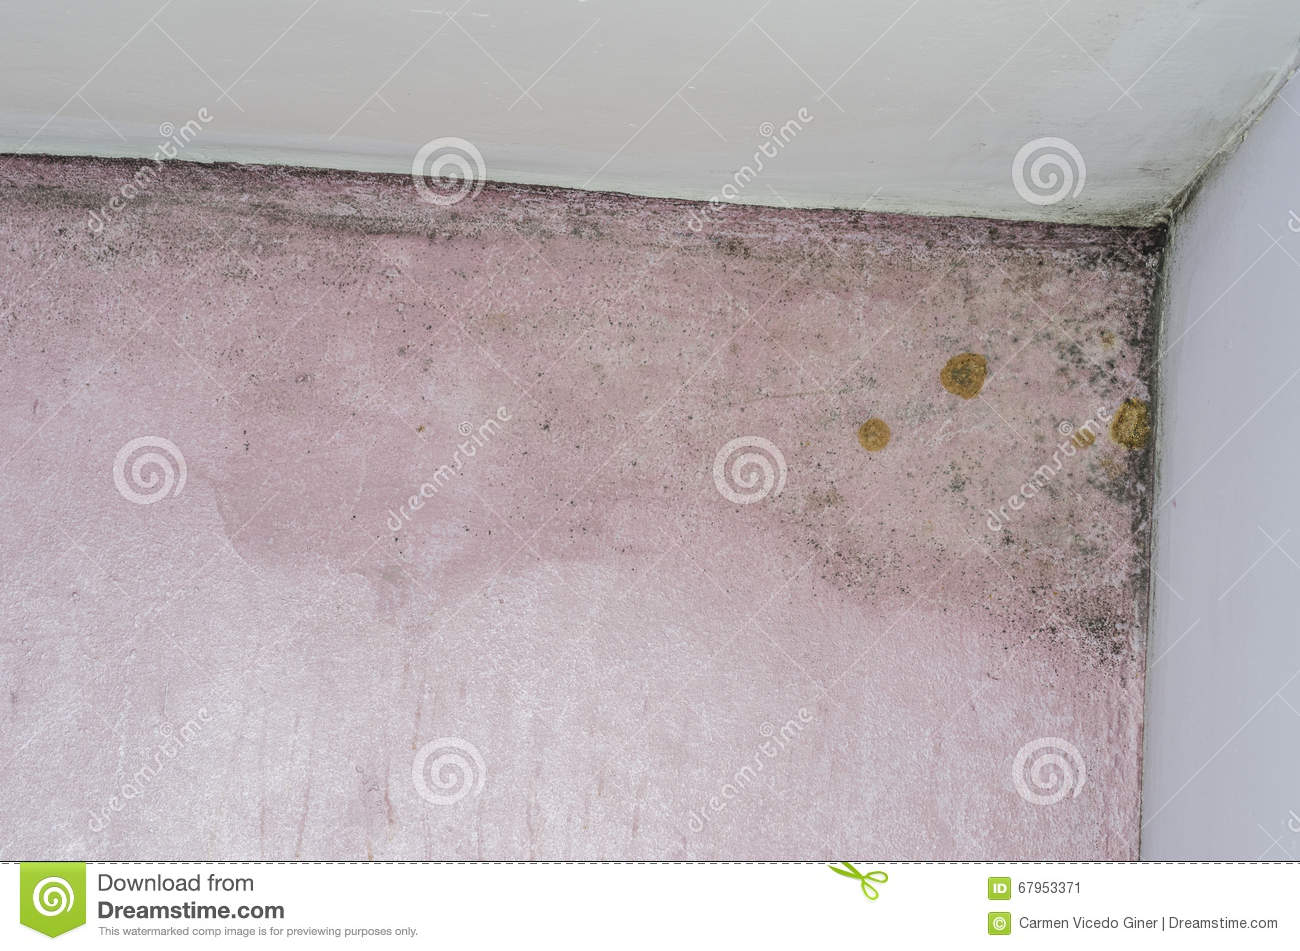 Mold and moisture buildup on pink wall